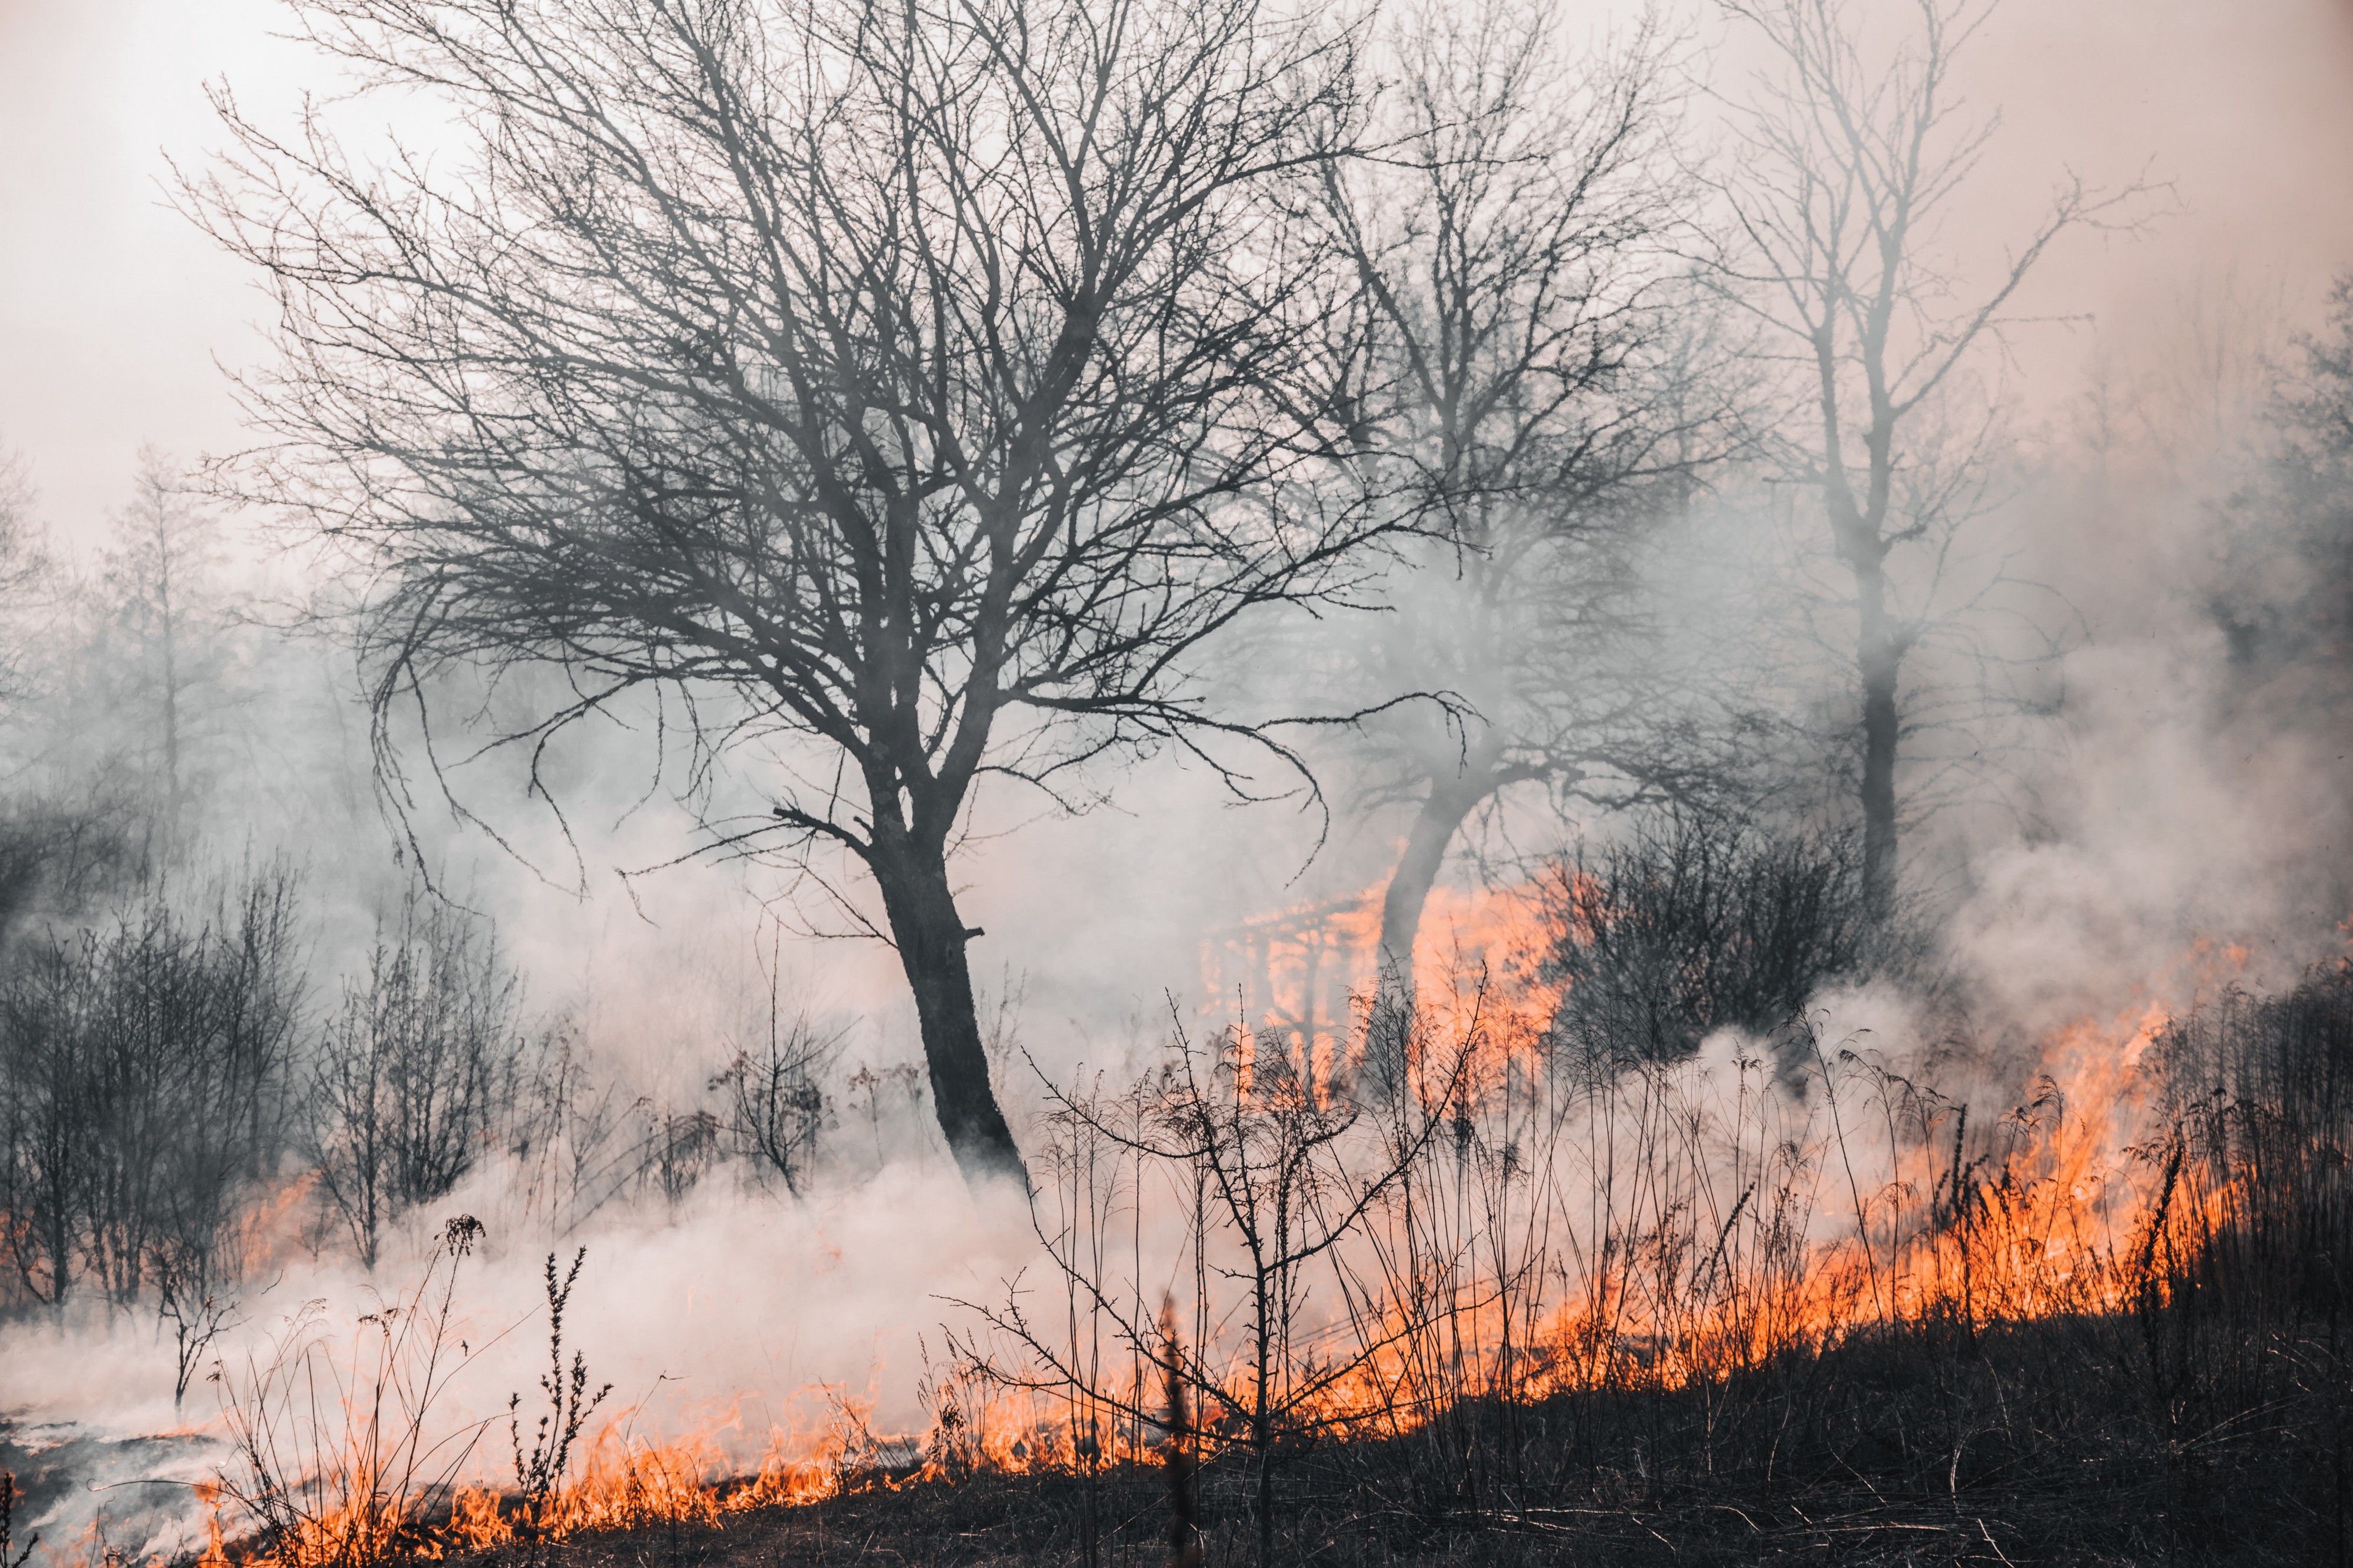 Bare tree surrounded by flames and smoke